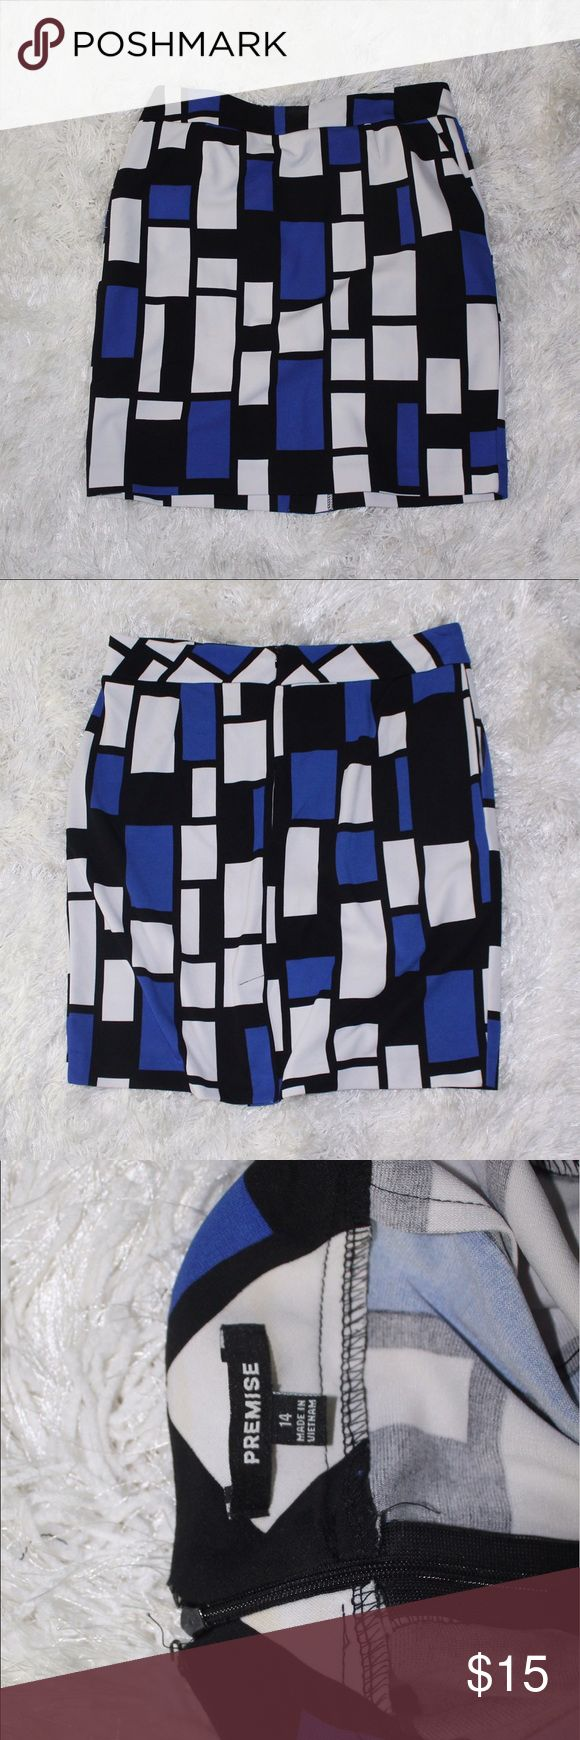 SIMPLE MOD SKIRT NEVER WORN Black blue and white mod skirt. Perfect for a casual day or night out! Skirts